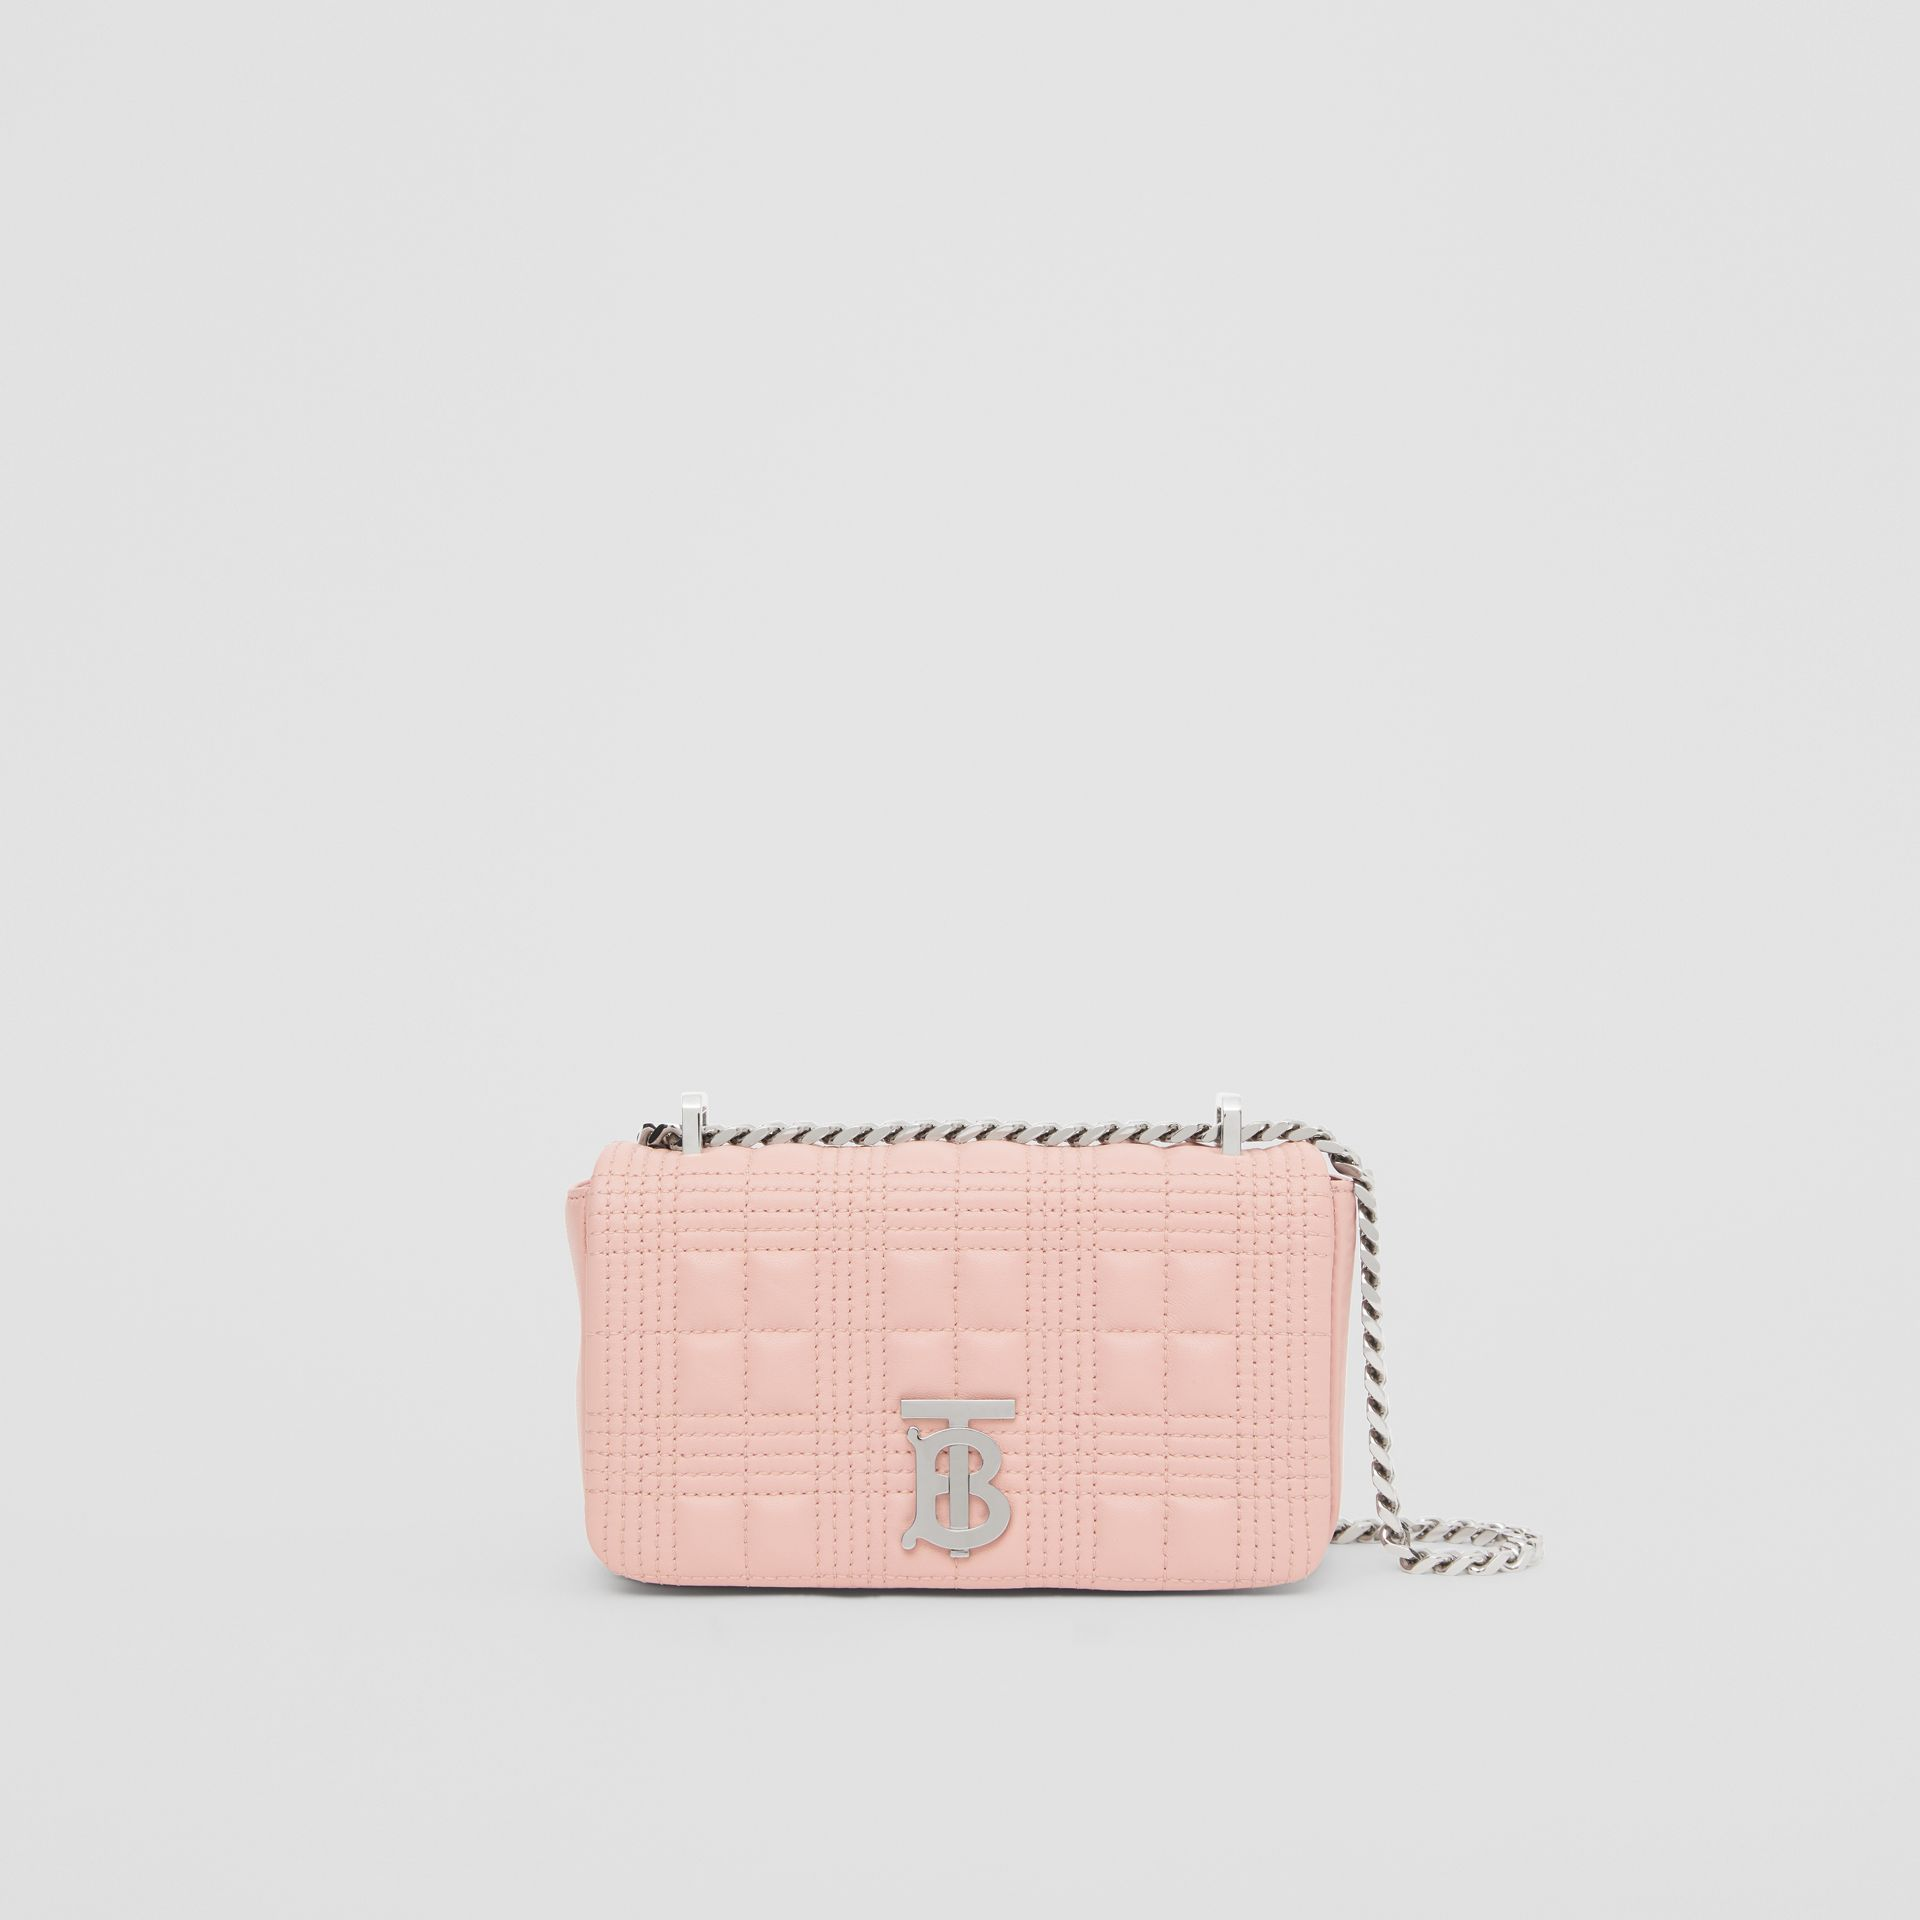 Mini Quilted Lambskin Lola Bag in Blush Pink - Women | Burberry - gallery image 0